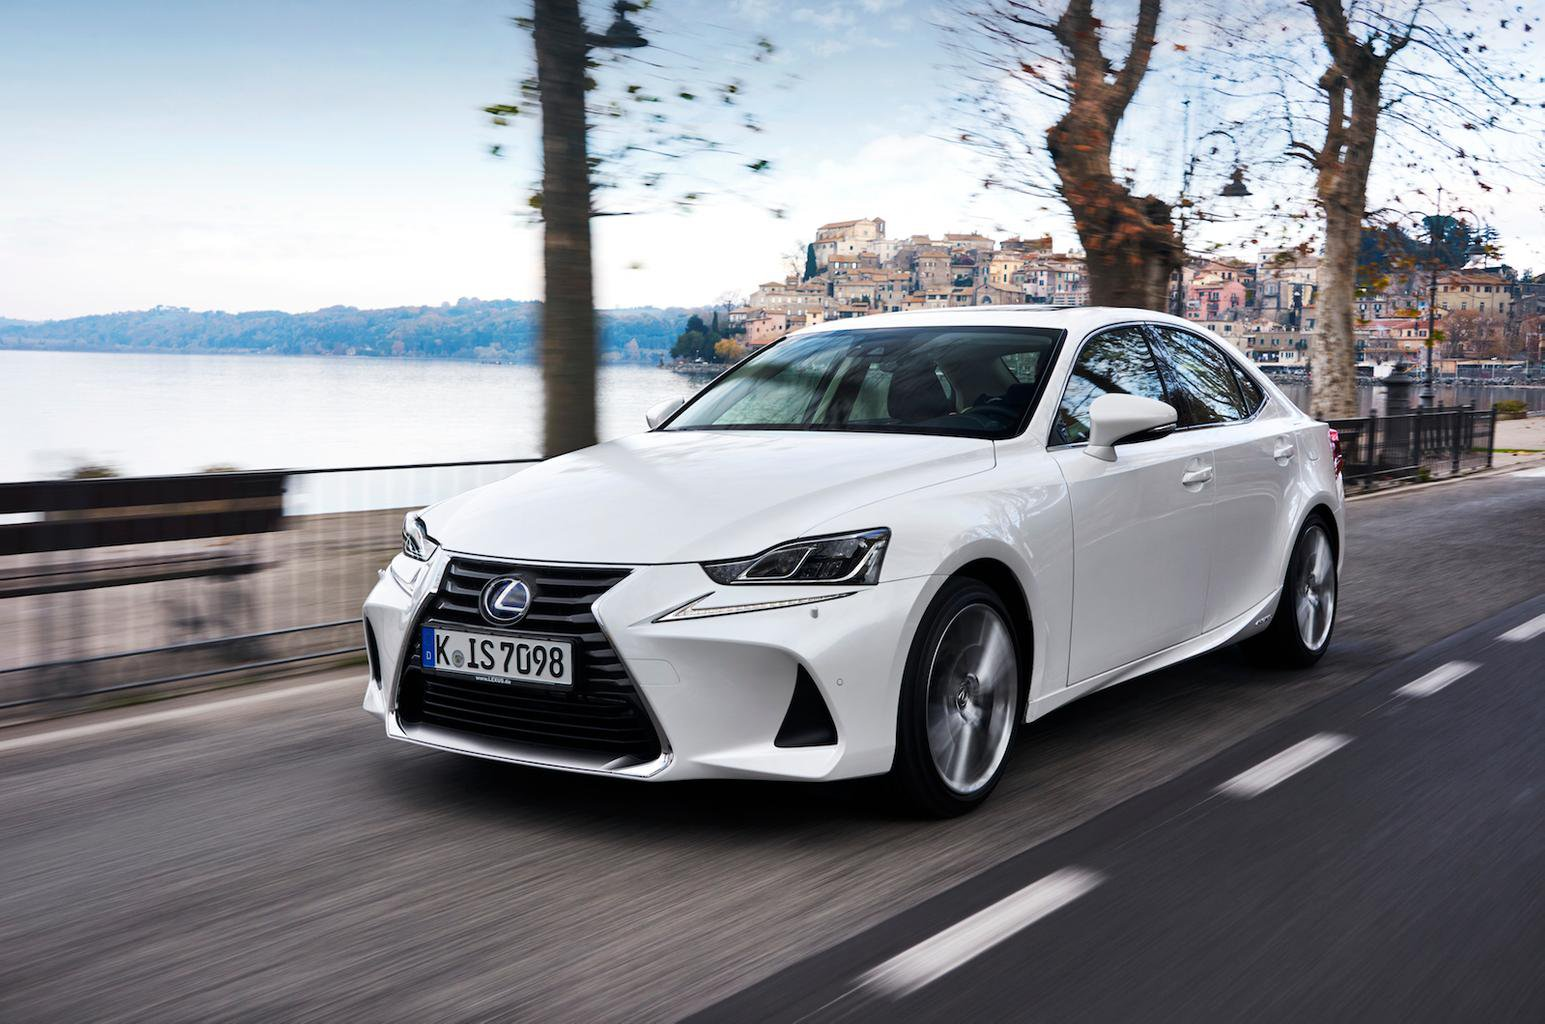 2017 Lexus IS300h review